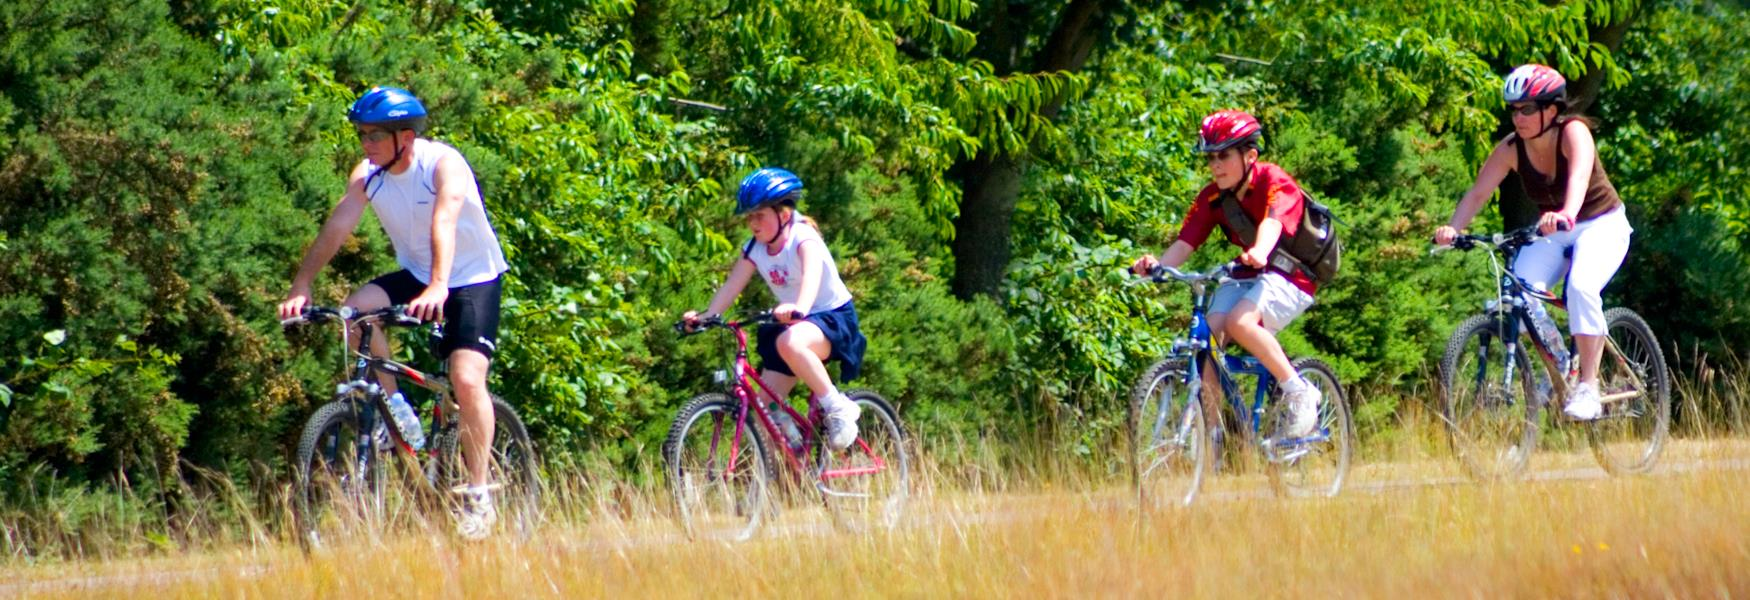 Cycling in Windsor Great Park